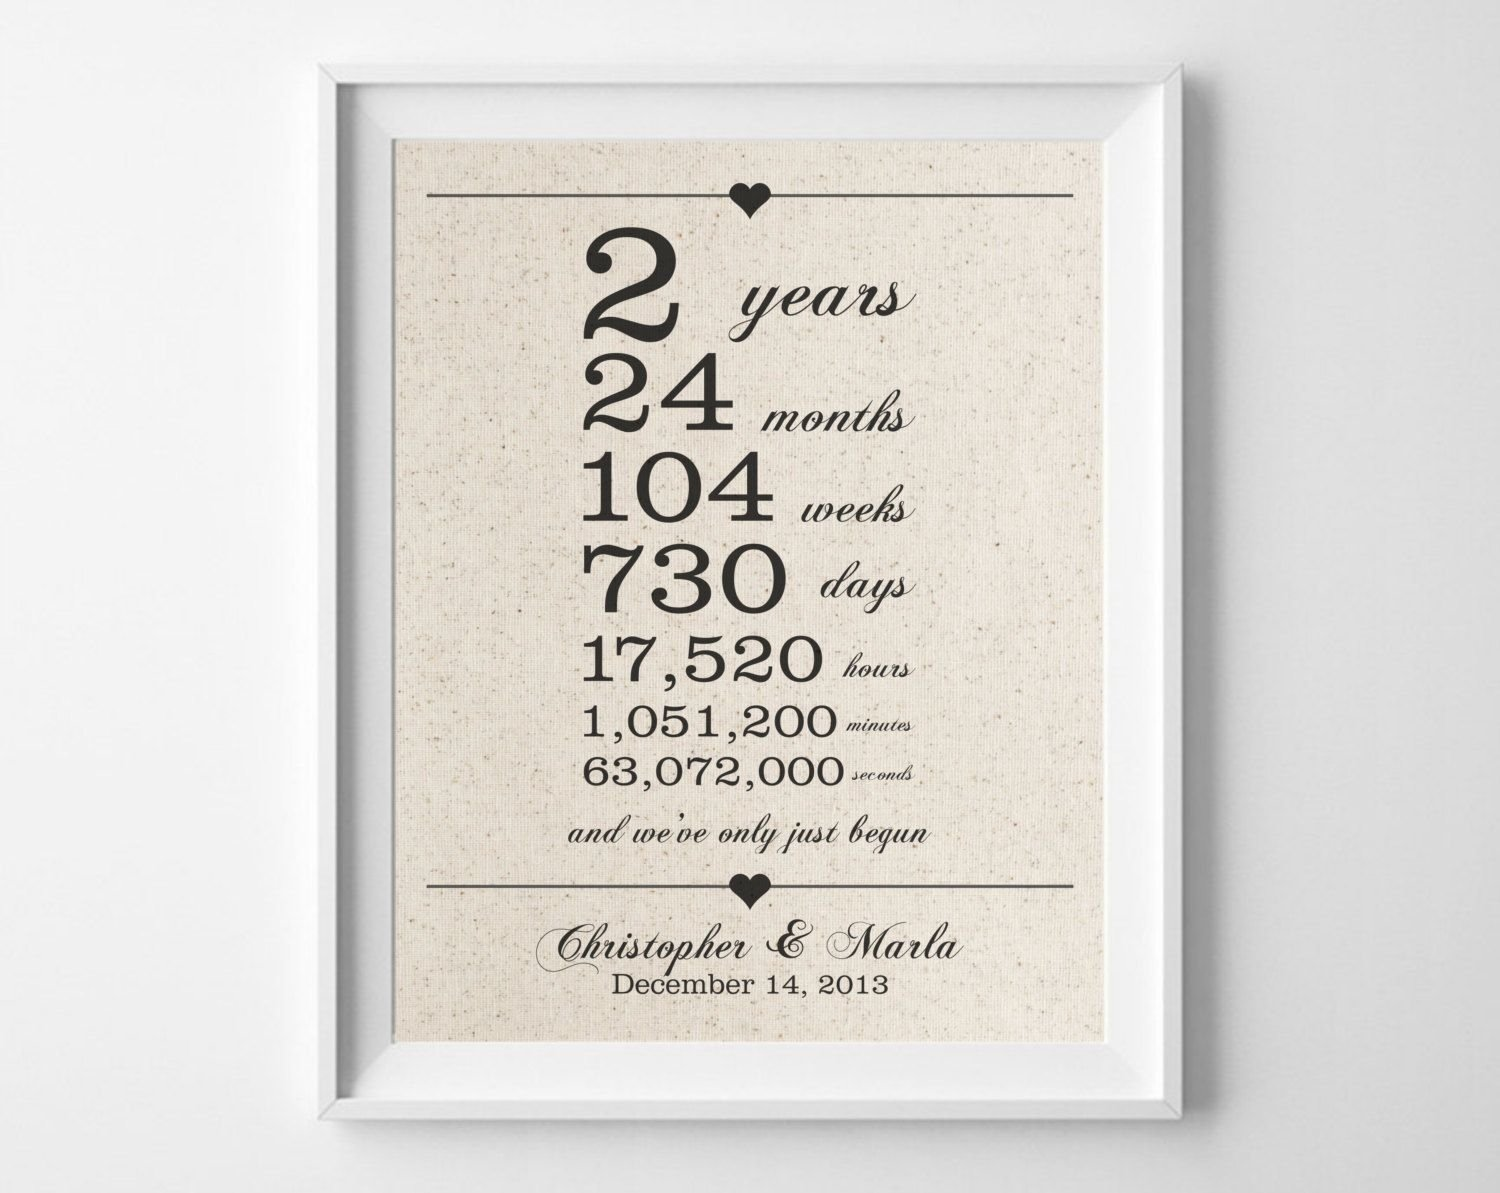 10 Fashionable 2Nd Anniversary Ideas For Him 2 years together cotton anniversary print 2nd anniversary days 12 2020